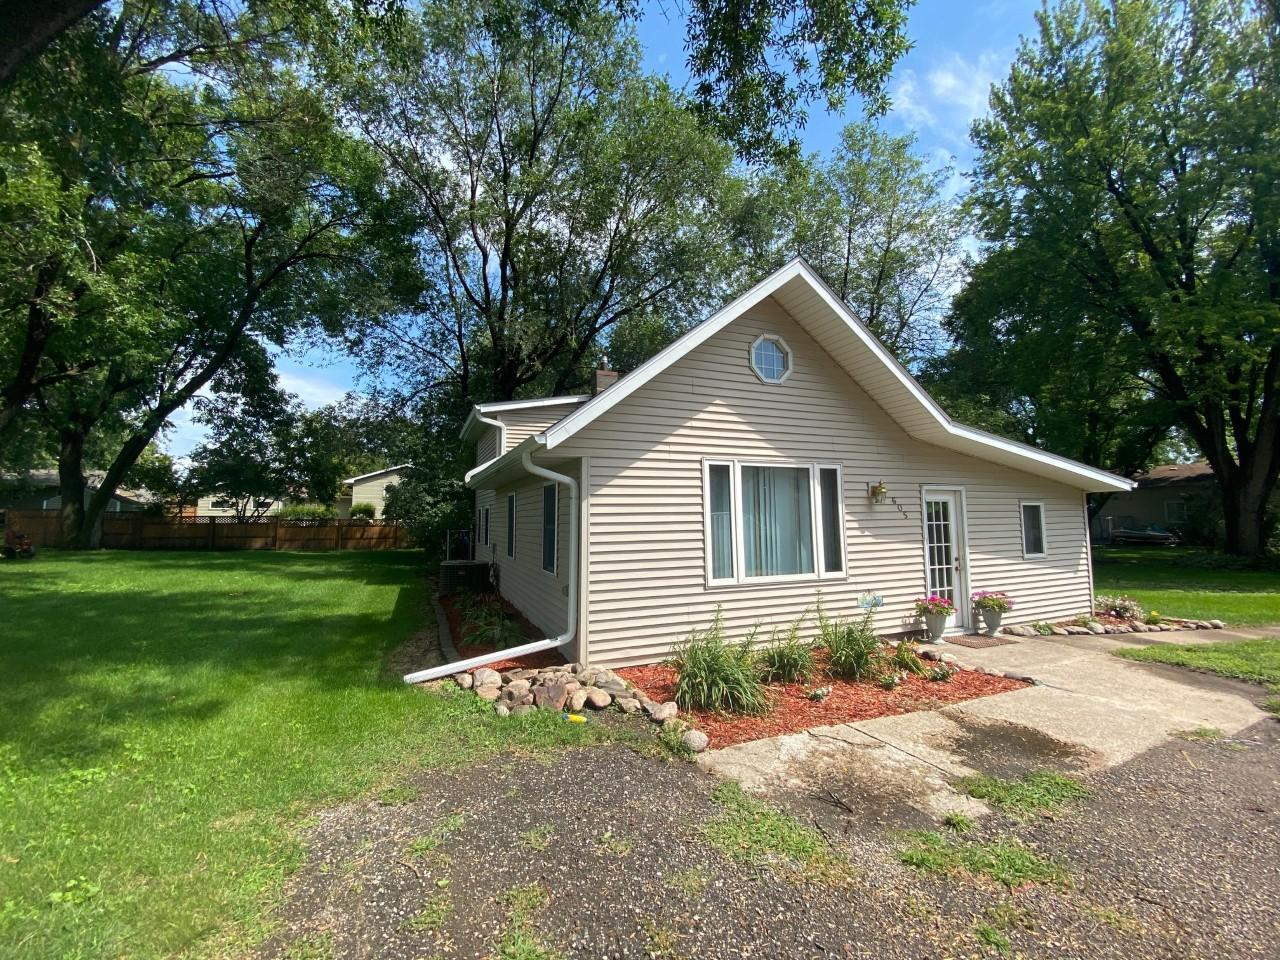 605 N Teal Street Property Photo - Janesville, MN real estate listing